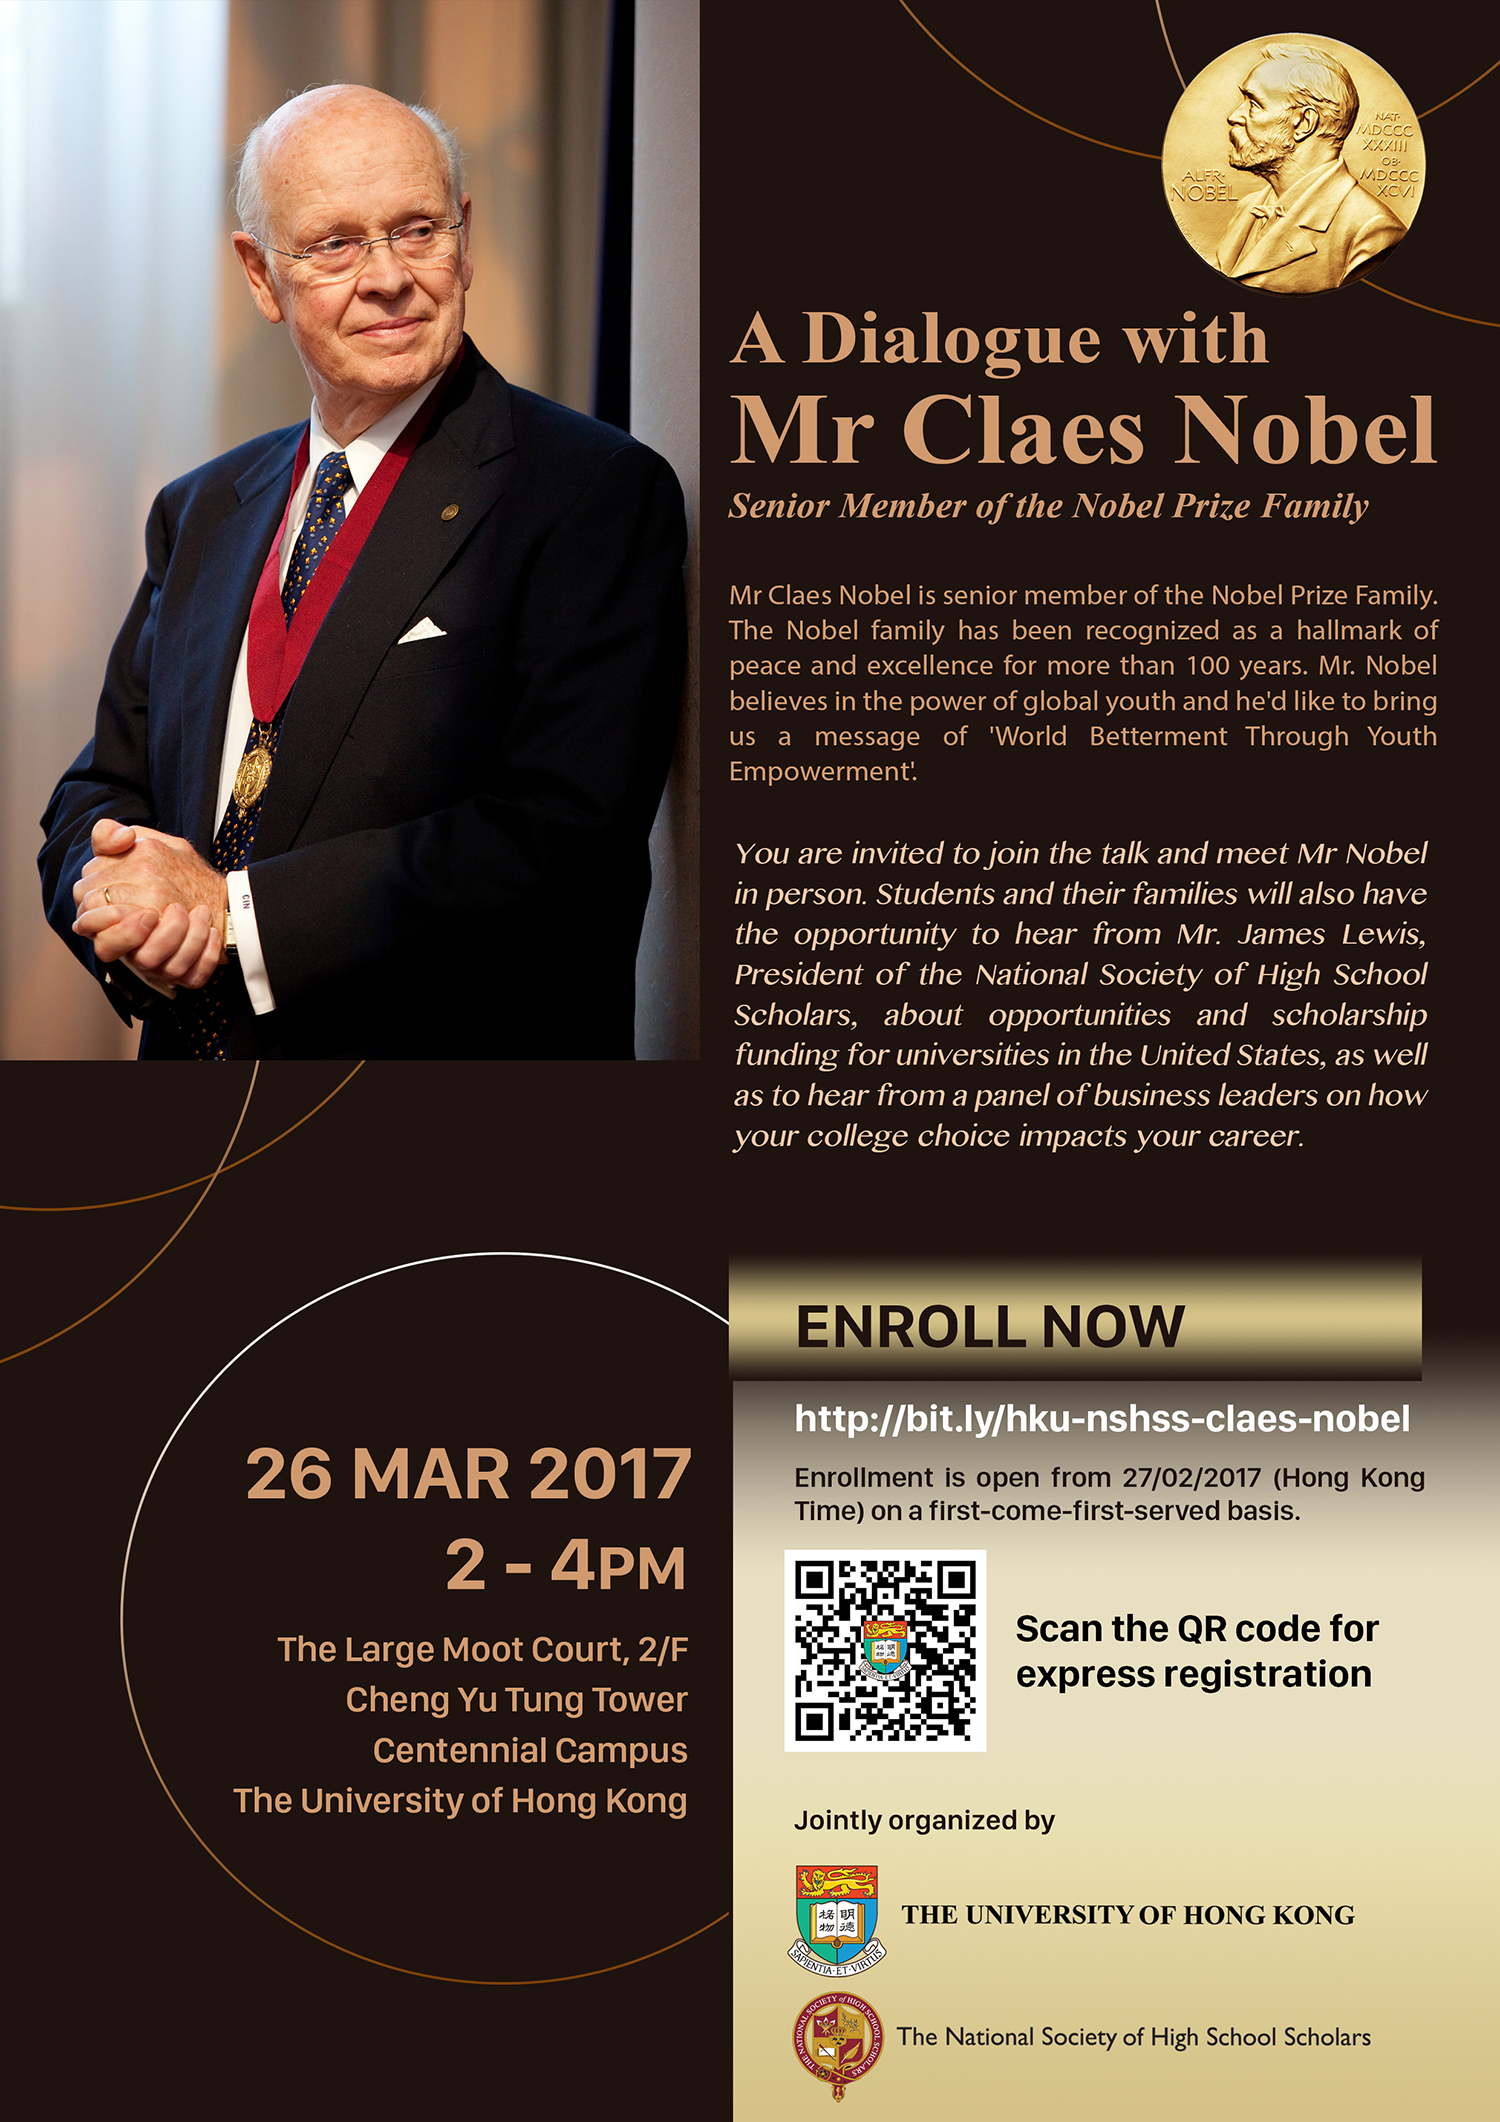 A Dialogue with Mr Claes Nobel, Senior Member of the Nobel Prize Family